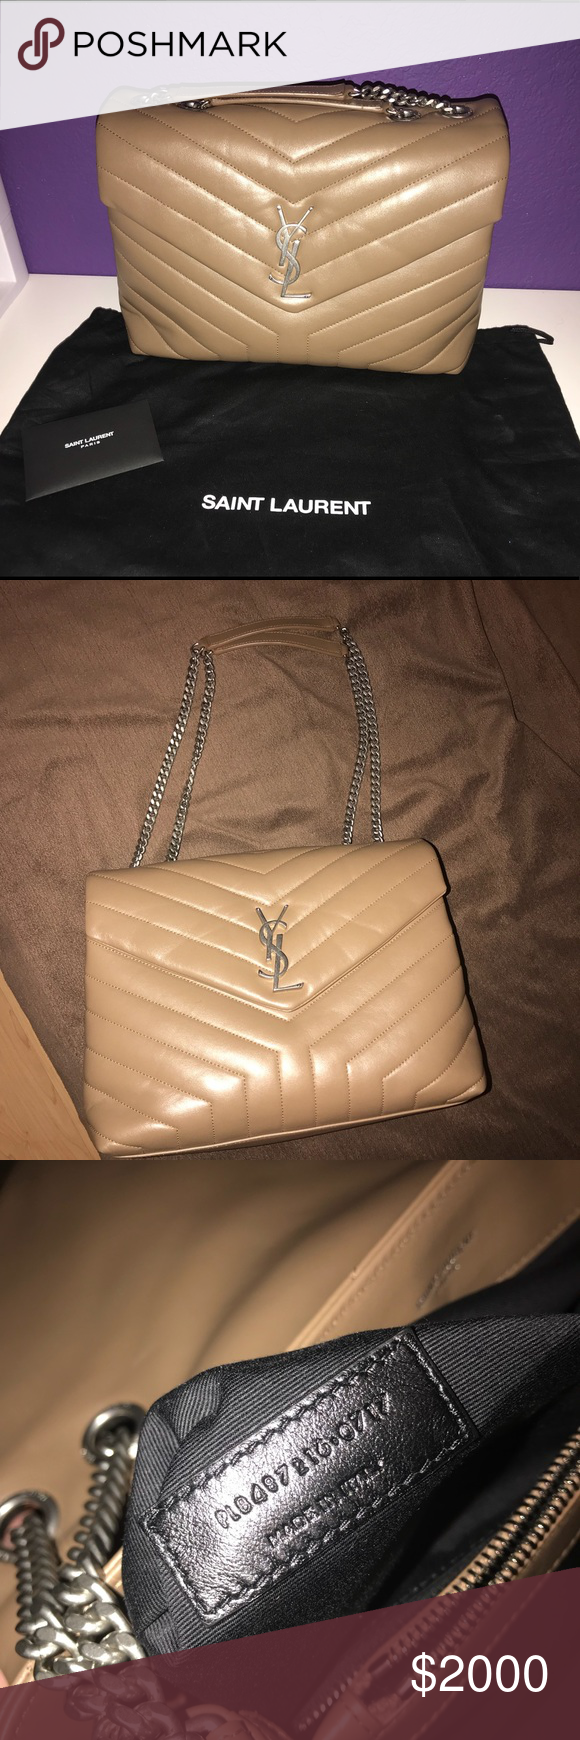 d52c3157228 Used only a few times, still in perfect condition! No flaws or damages.  Comes with dust bag and authenticity cards. Yves Saint Laurent Bags ...